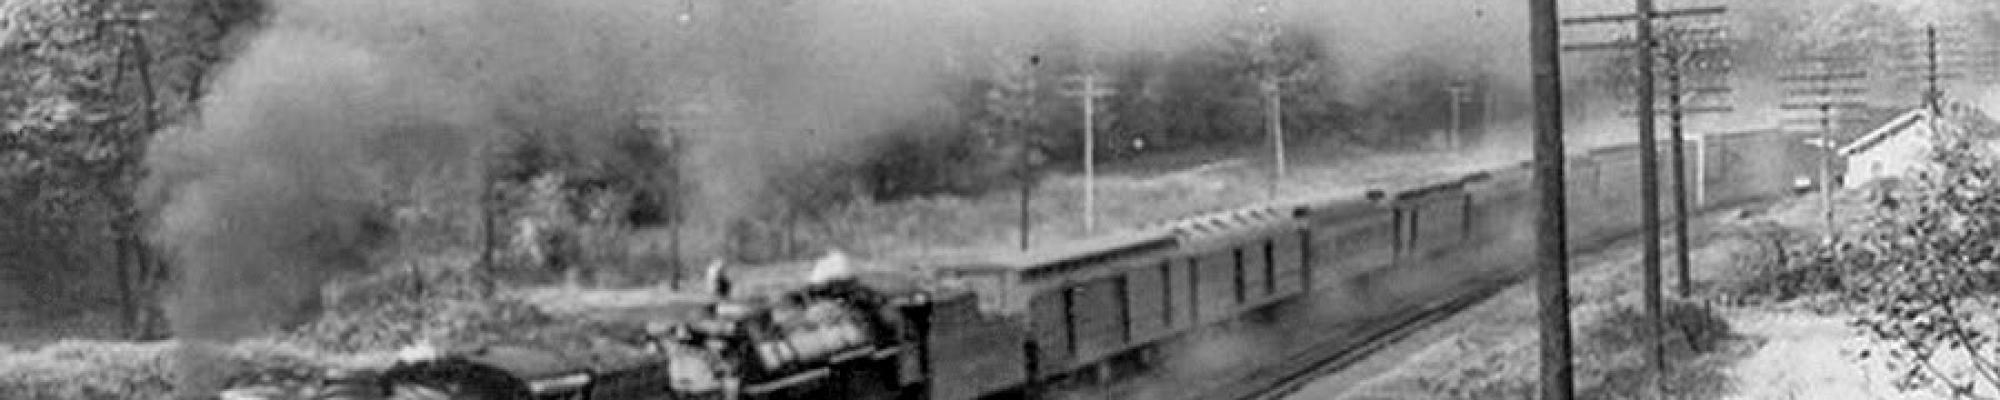 FDR Rail Travels & His Funeral Train